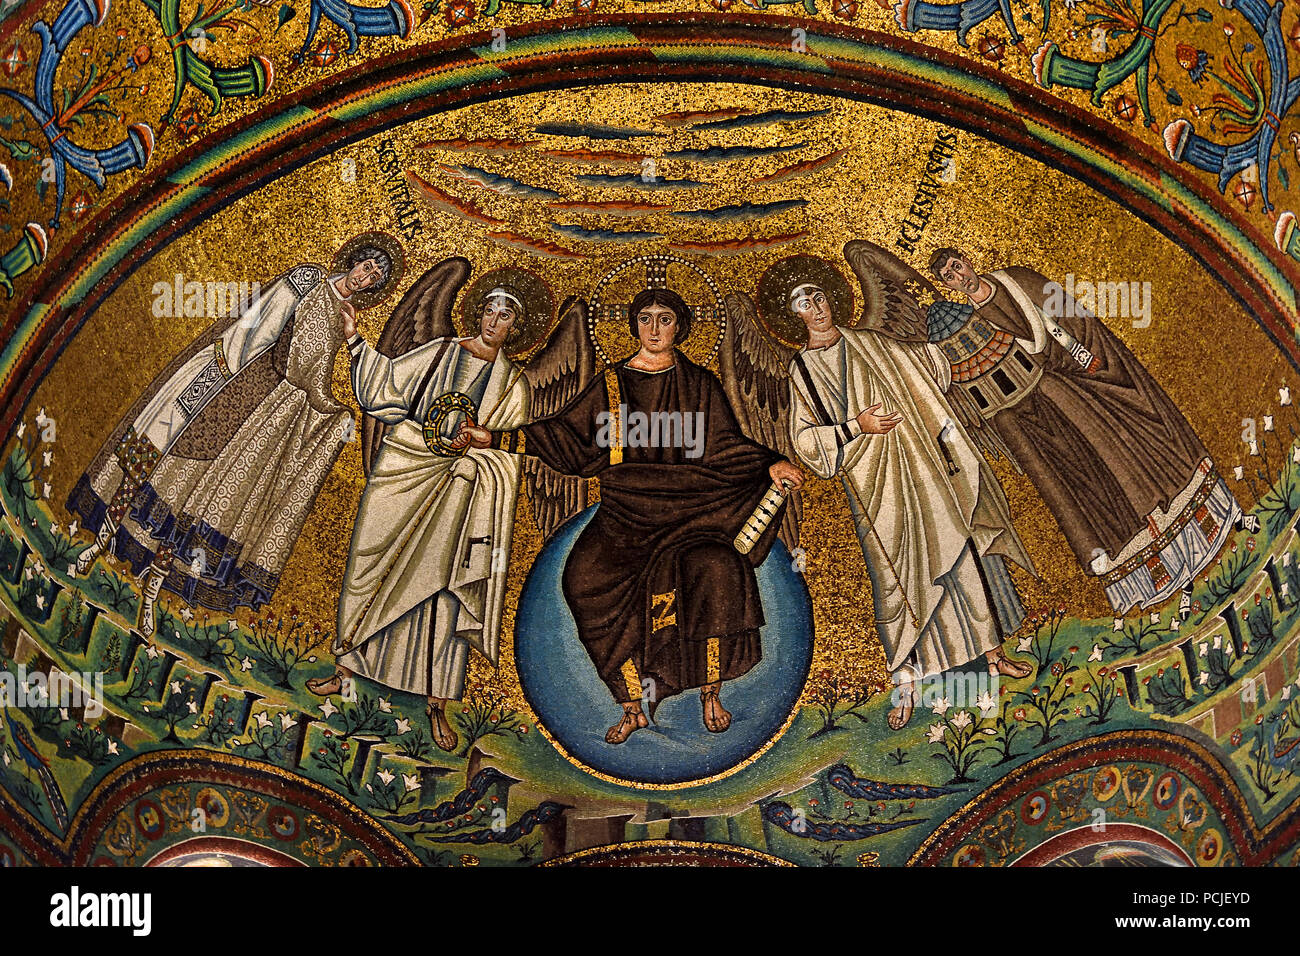 Depicting Christ as creator of the cosmos in Basilica of San Vitale 547 AD 6th Century in Ravenna - Mosaics ( late Roman and Byzantine architecture,) Emilia-Romagna - Northern Italy. ( UNESCO World Heritage site ) Italian - Stock Image